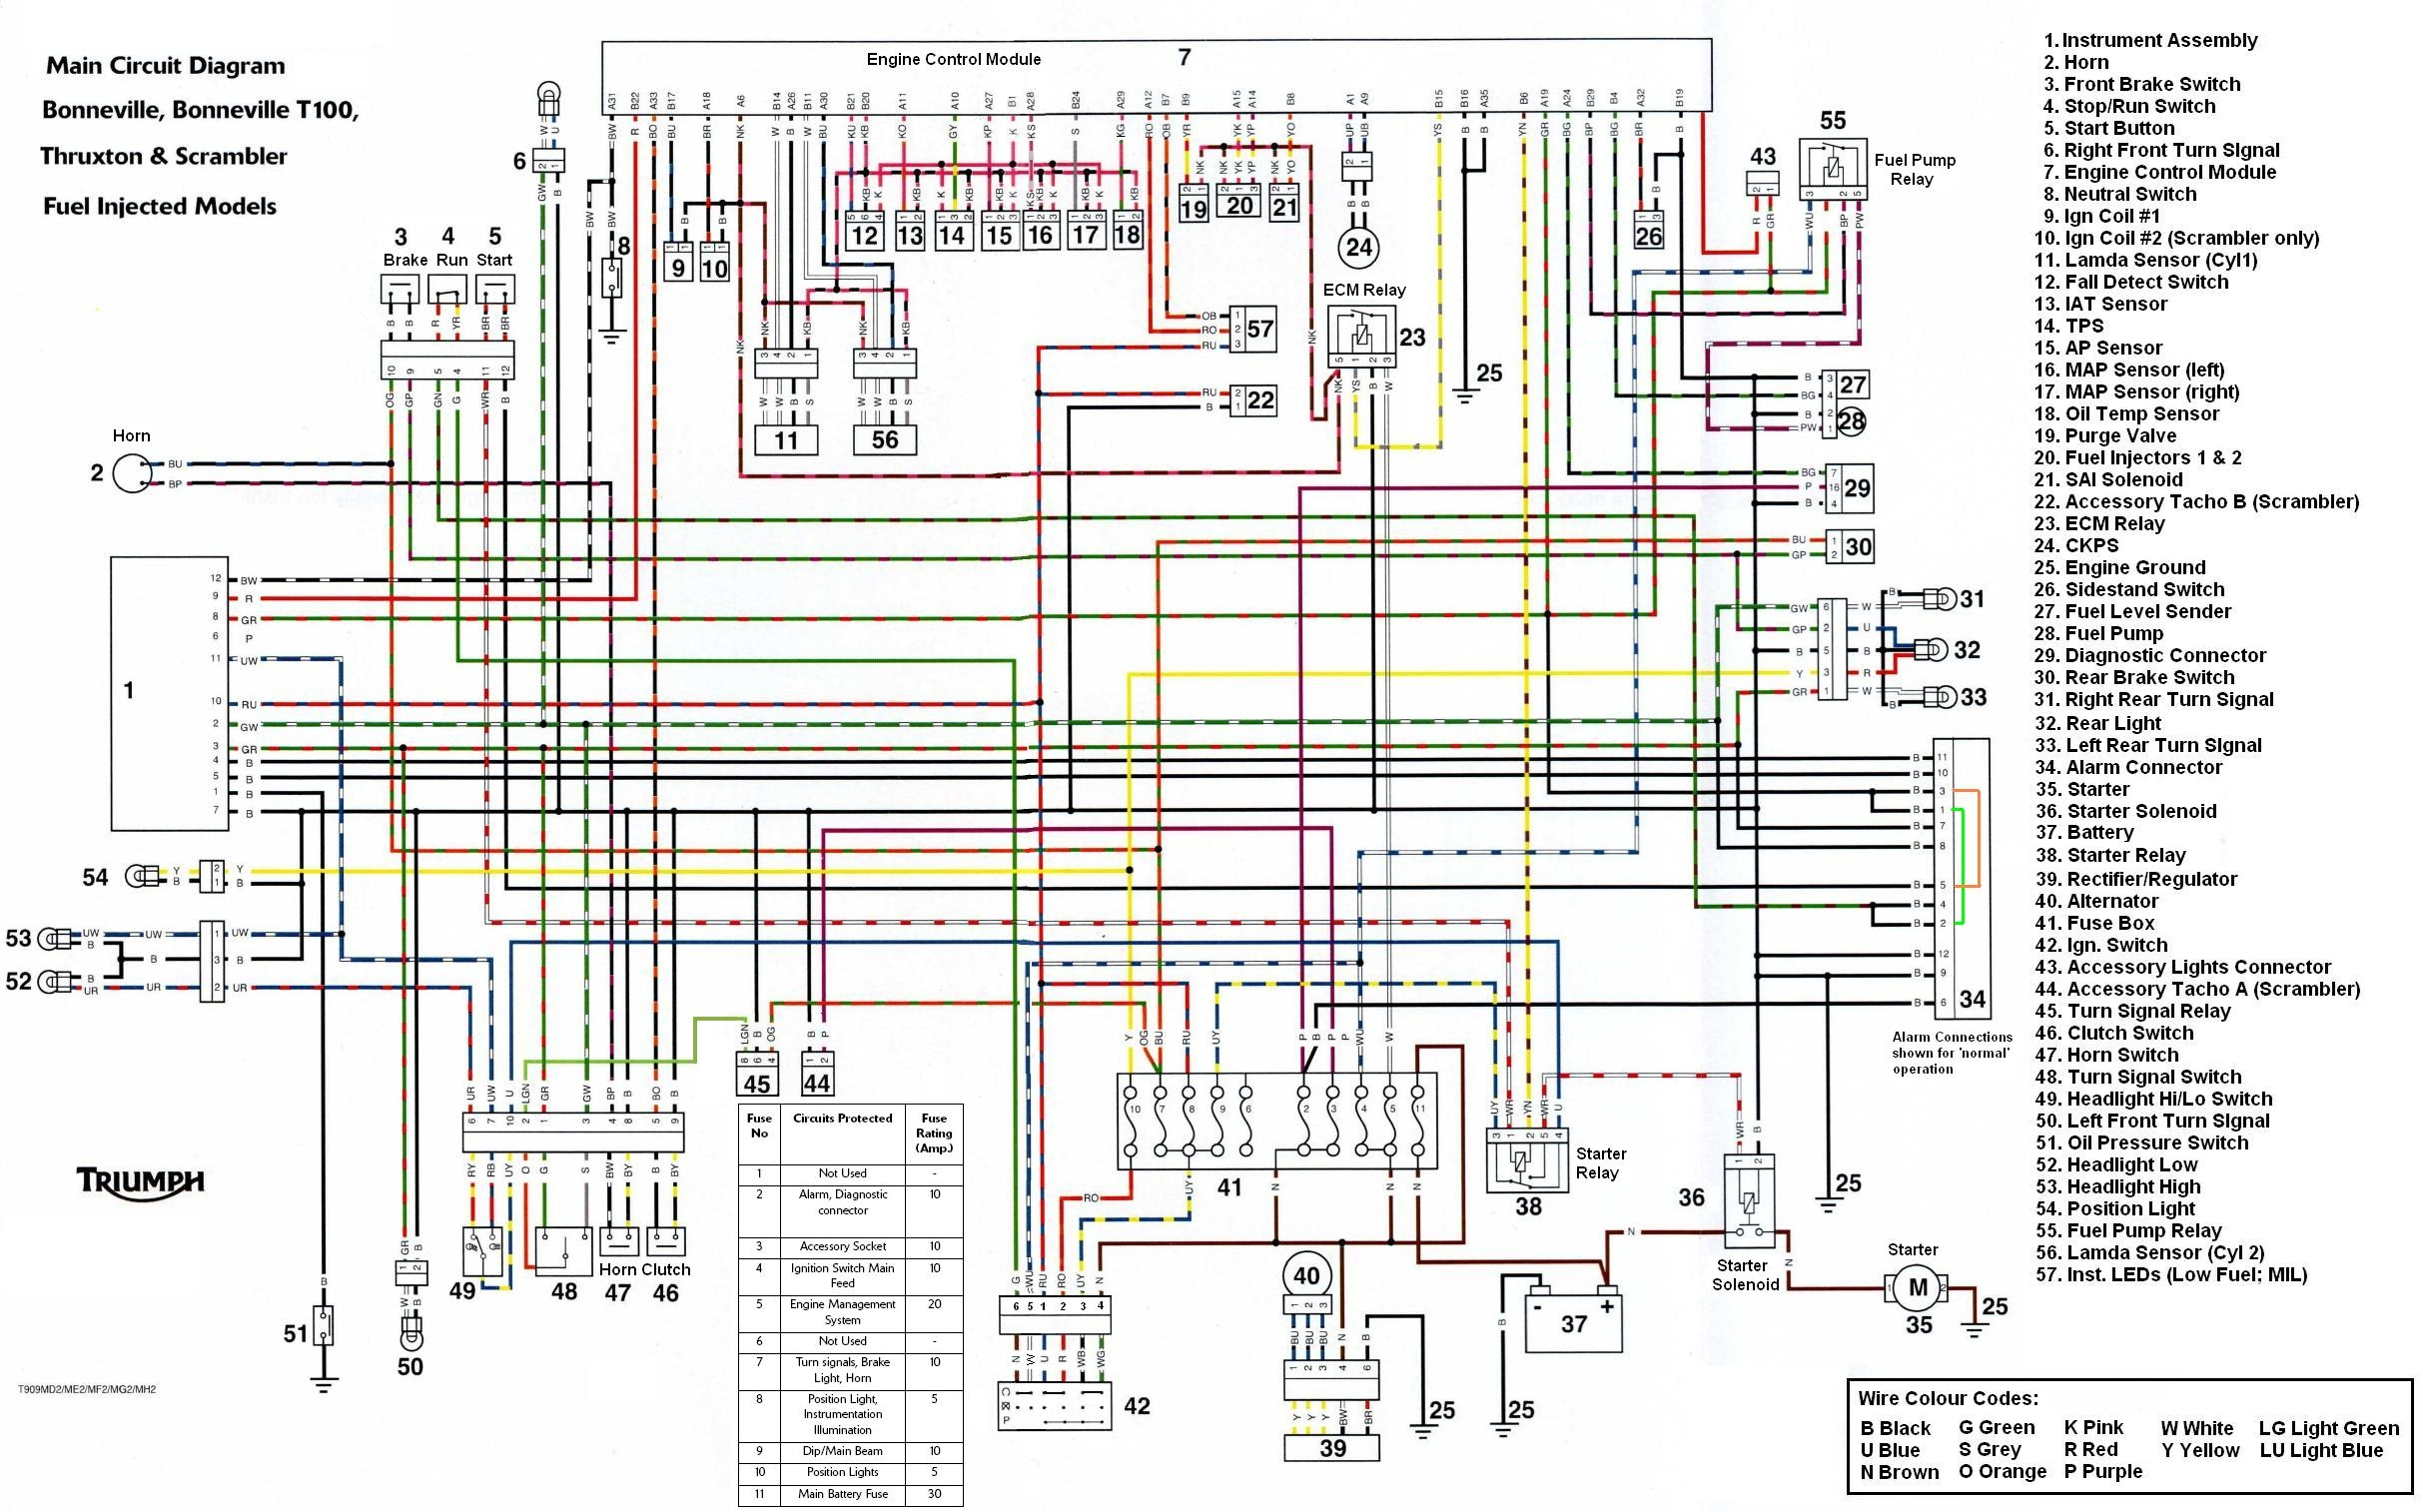 Suzuki Ts 250 X Wiring Diagram Simple Wiring Diagram 1979 Triumph Wiring  Diagram Free Download Schematic